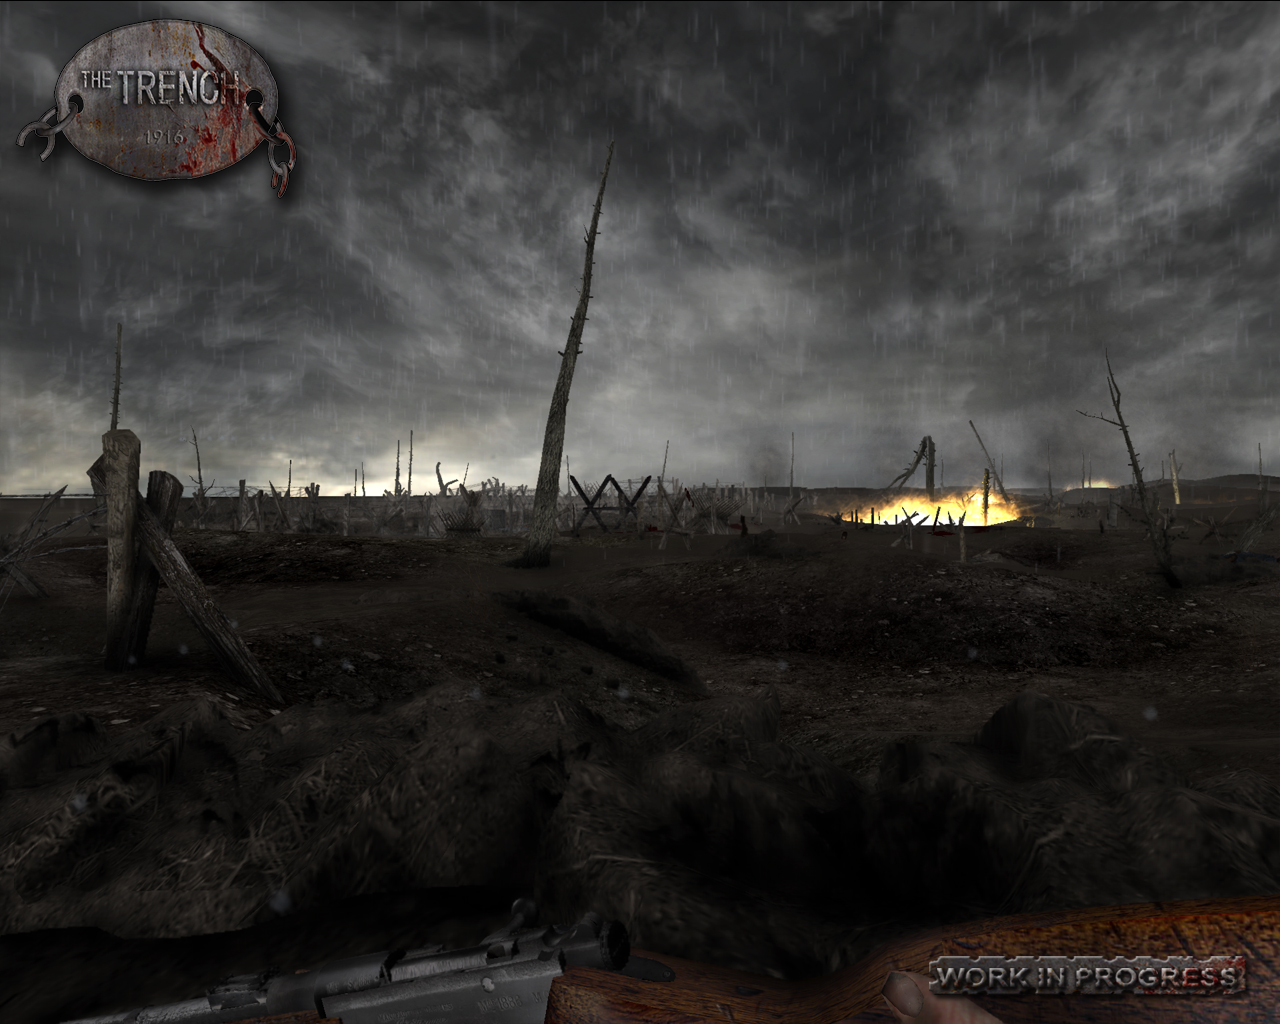 THE TRENCH  Thetrench7